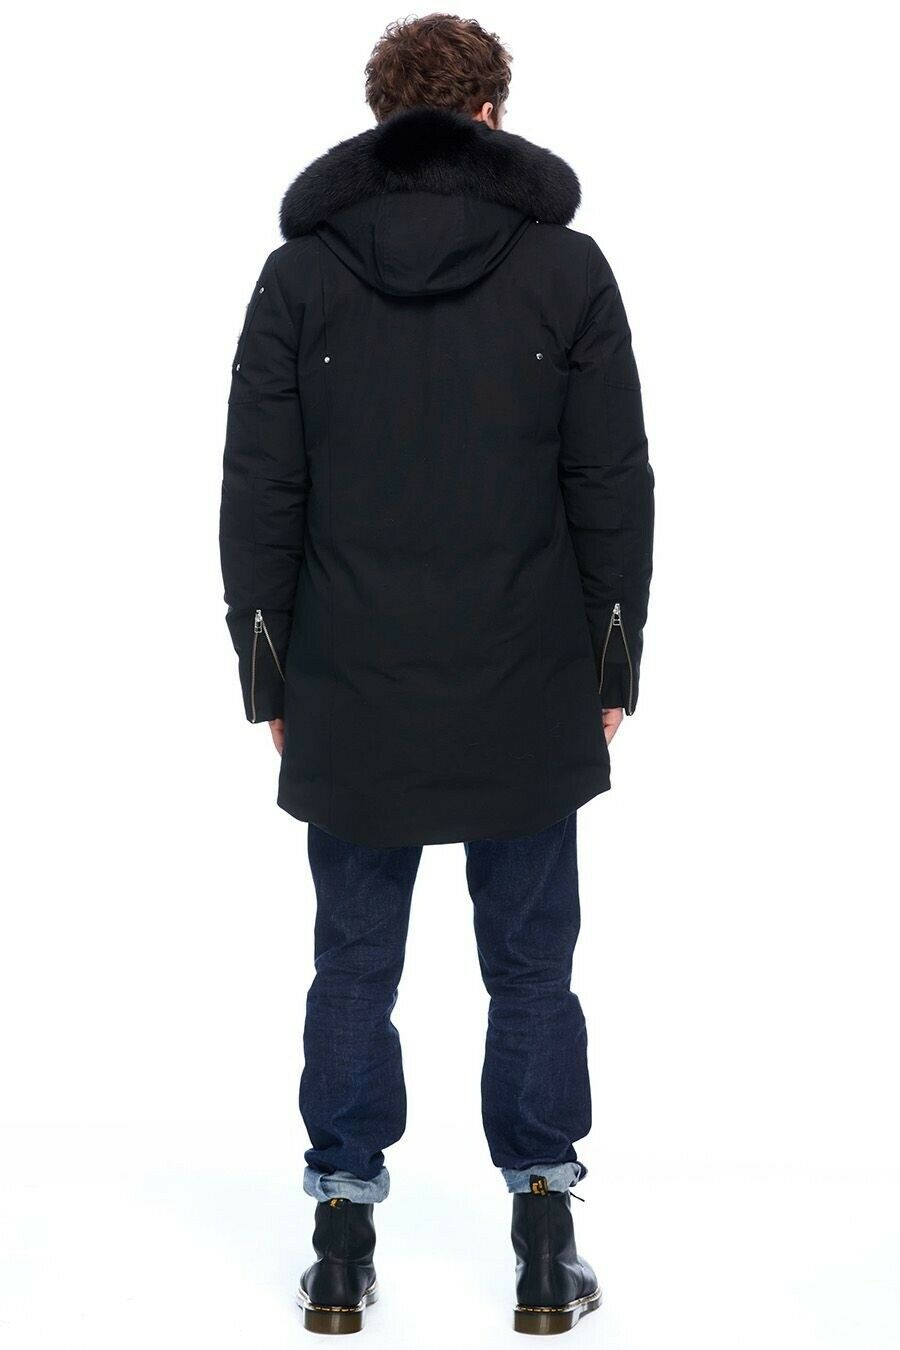 MOOSE KNUCKLES STIRLING PARKA BLACK W/ BLACK